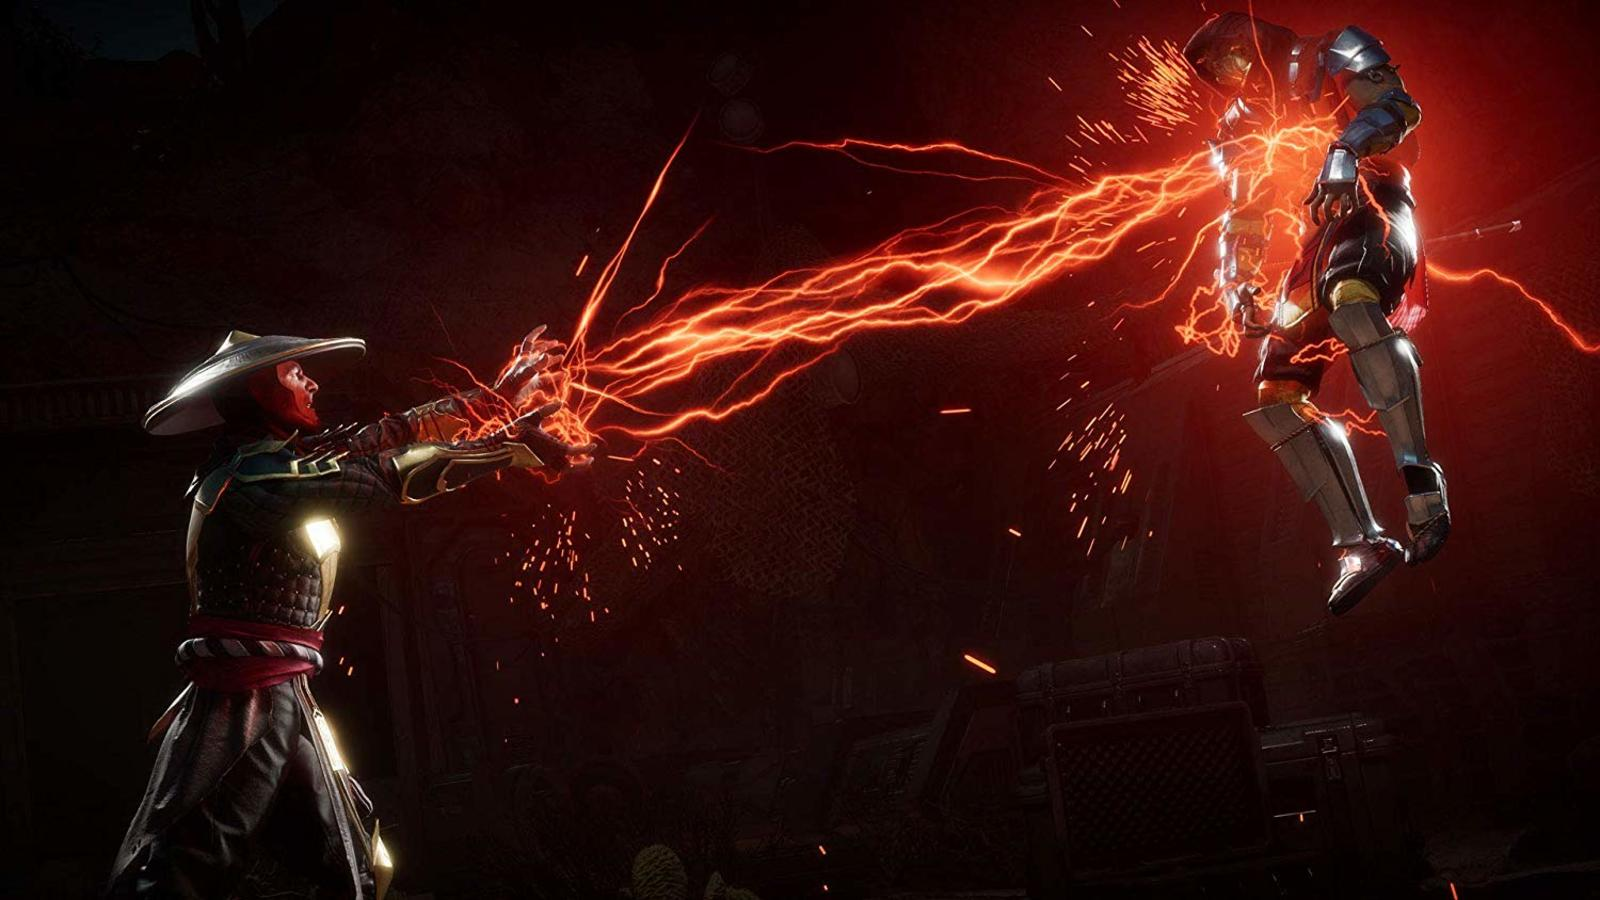 Mortal Kombat 11 is the best fighting game on Xbox One